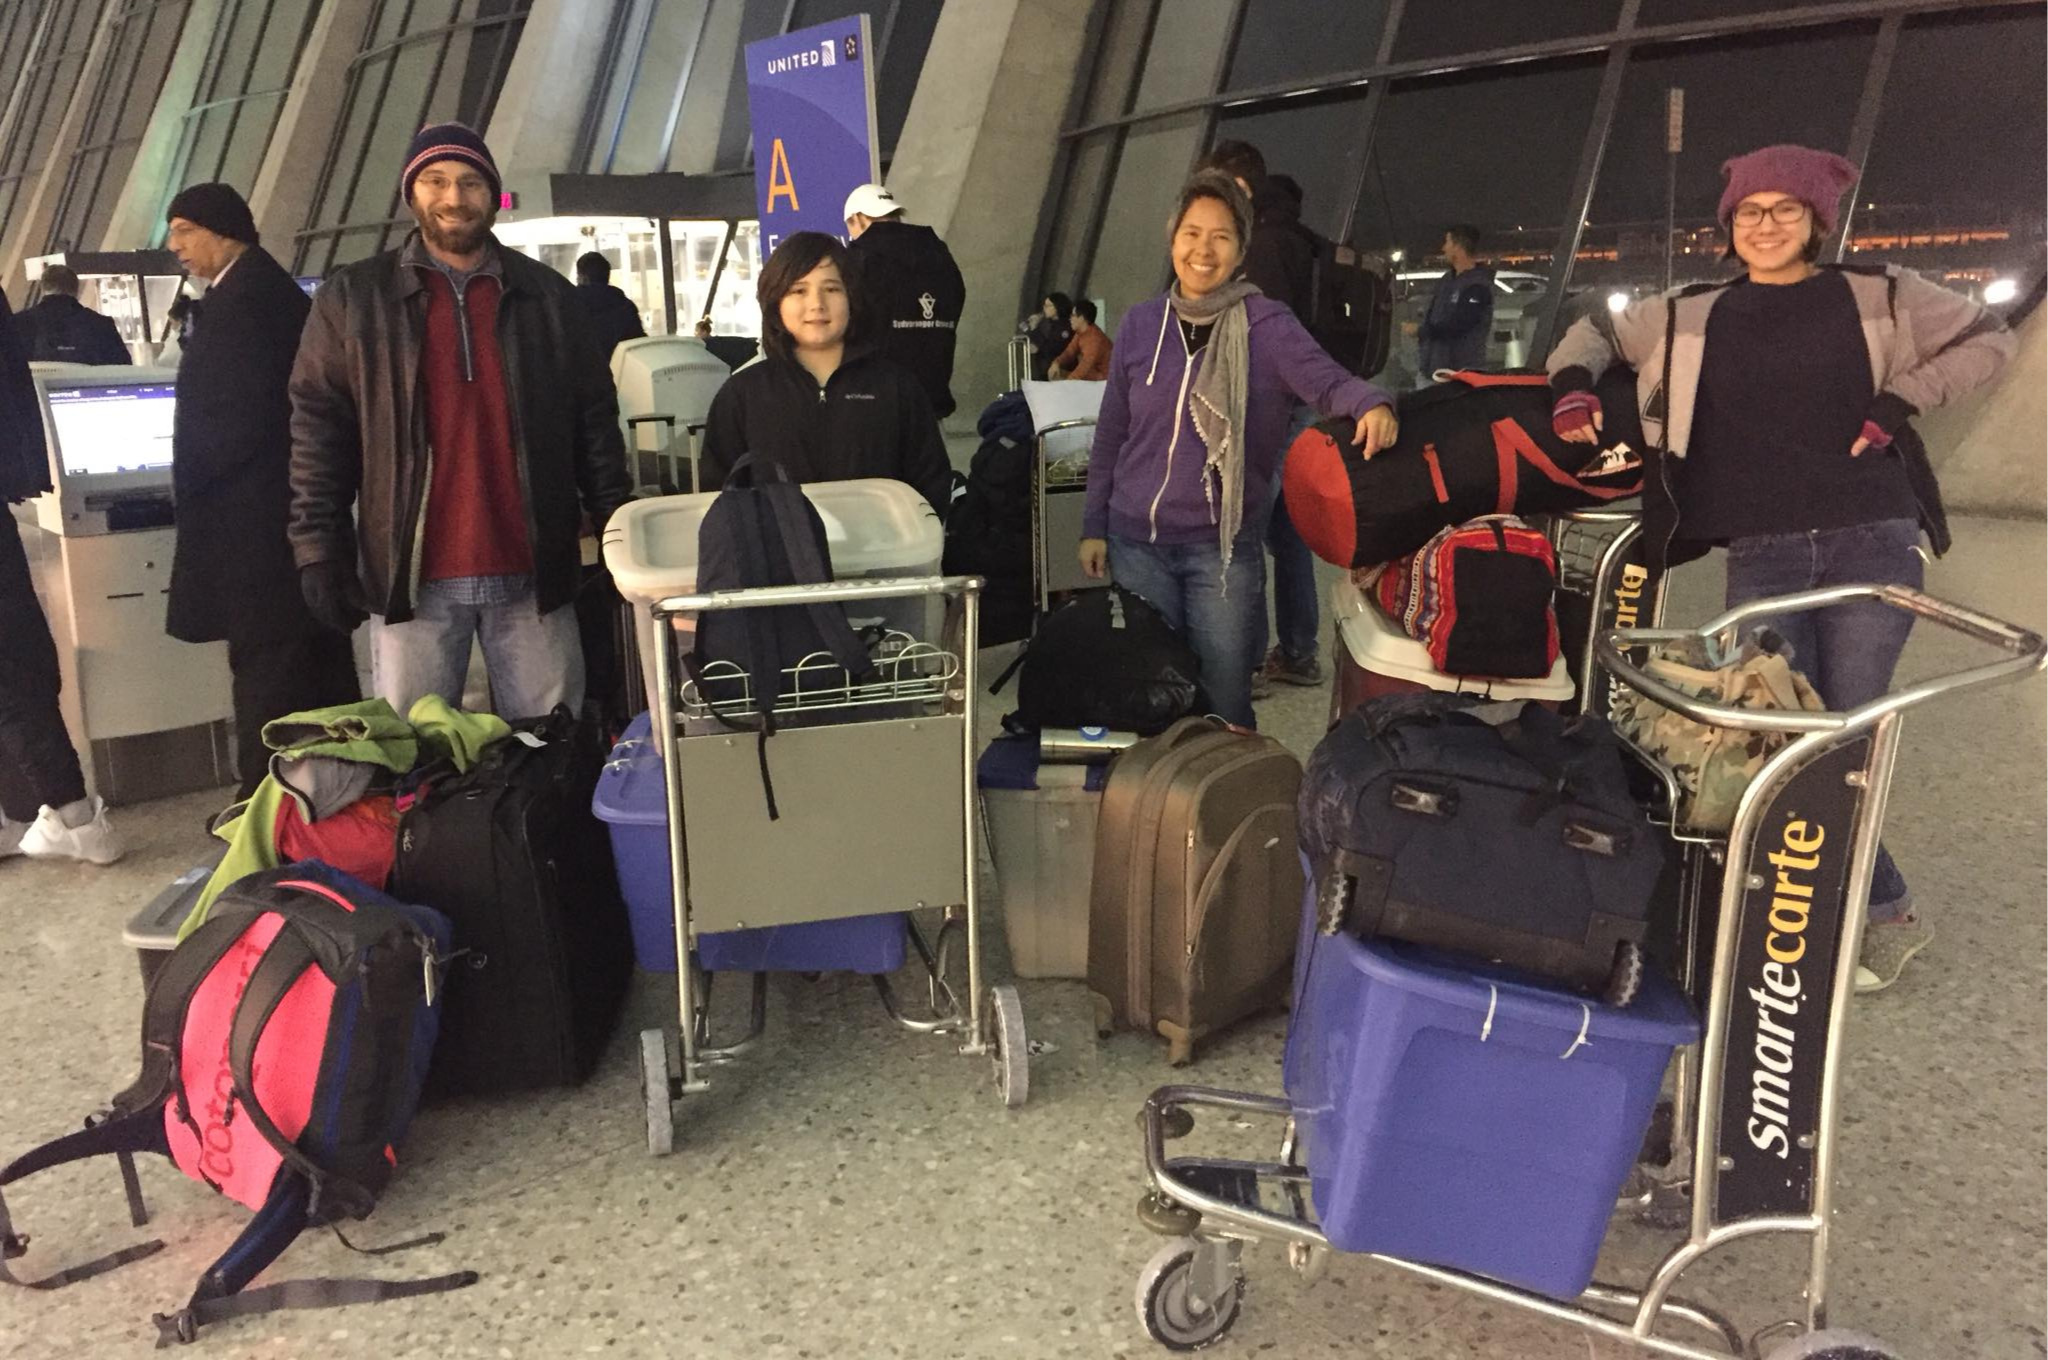 We brought a lot of luggage with us to Mexico in January 2018, but left our baggage in the U.S.